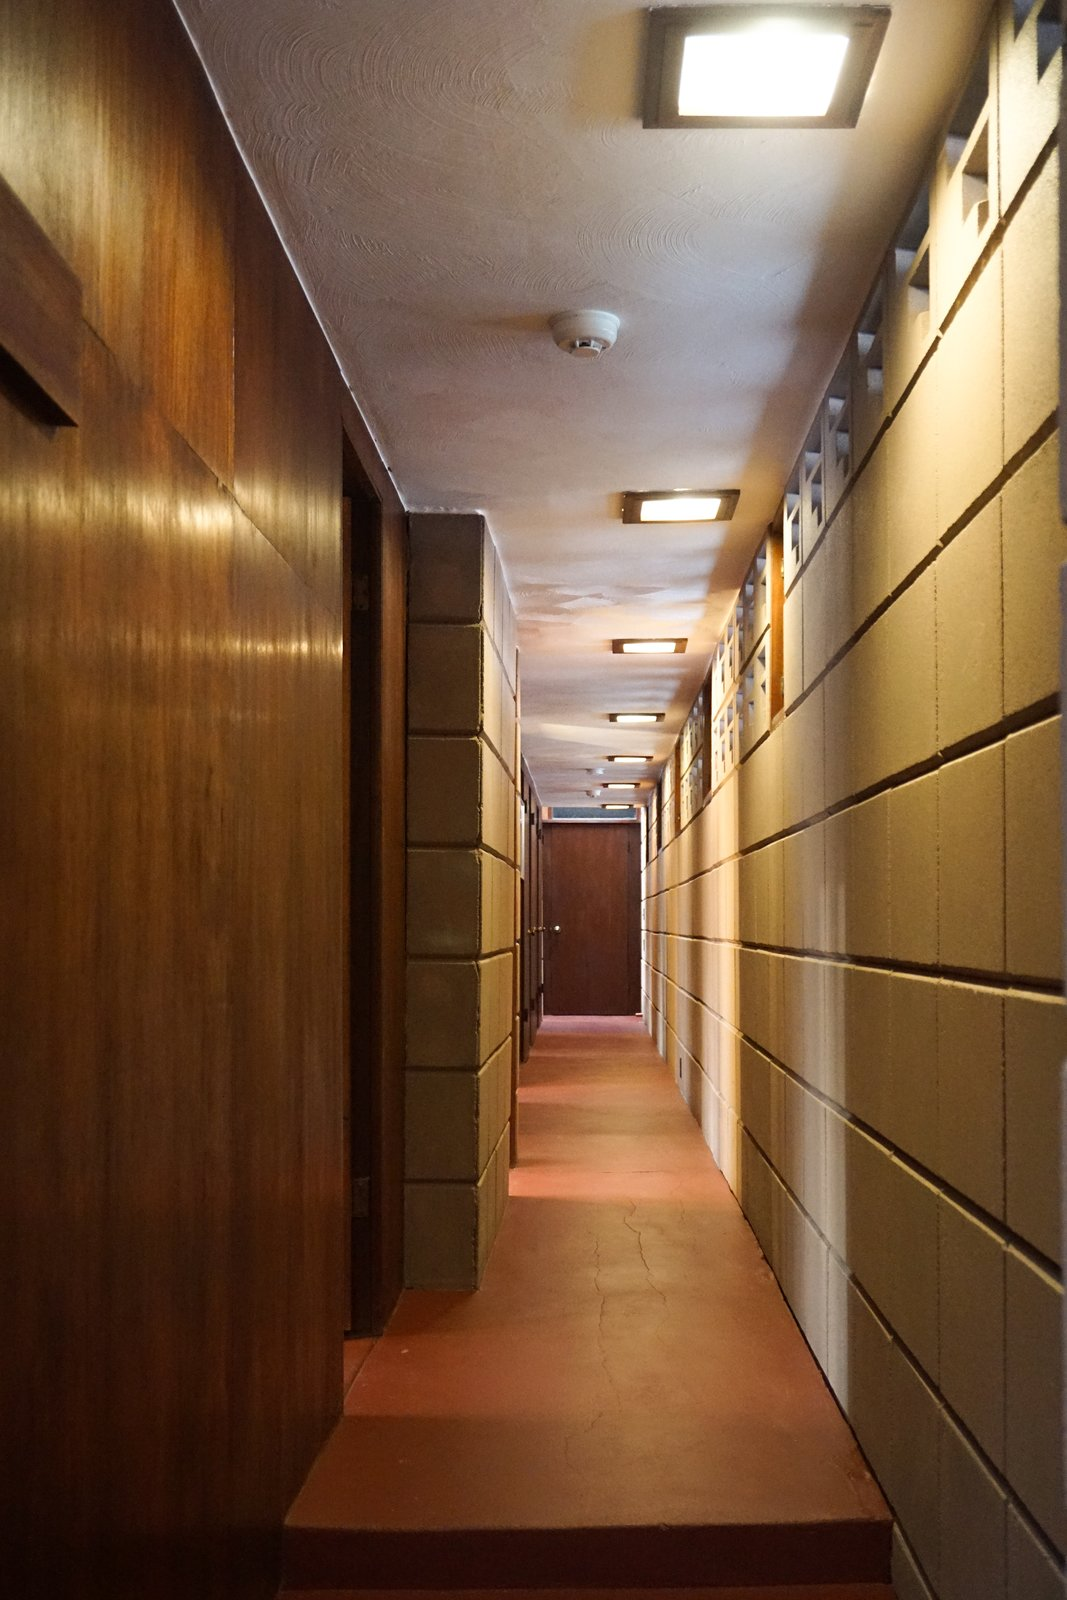 Hallway and Concrete Floor Refinished concrete floors extend down the Gallery corridor.  Perforated concrete blocks act as transom windows to fill the corridor with light.  Mahogany woodwork and doors lead to the sleeping spaces.  Frank Lloyd Wright's Eppstein House from You Can Now Rent Frank Lloyd Wright's Gloriously Restored Eppstein House